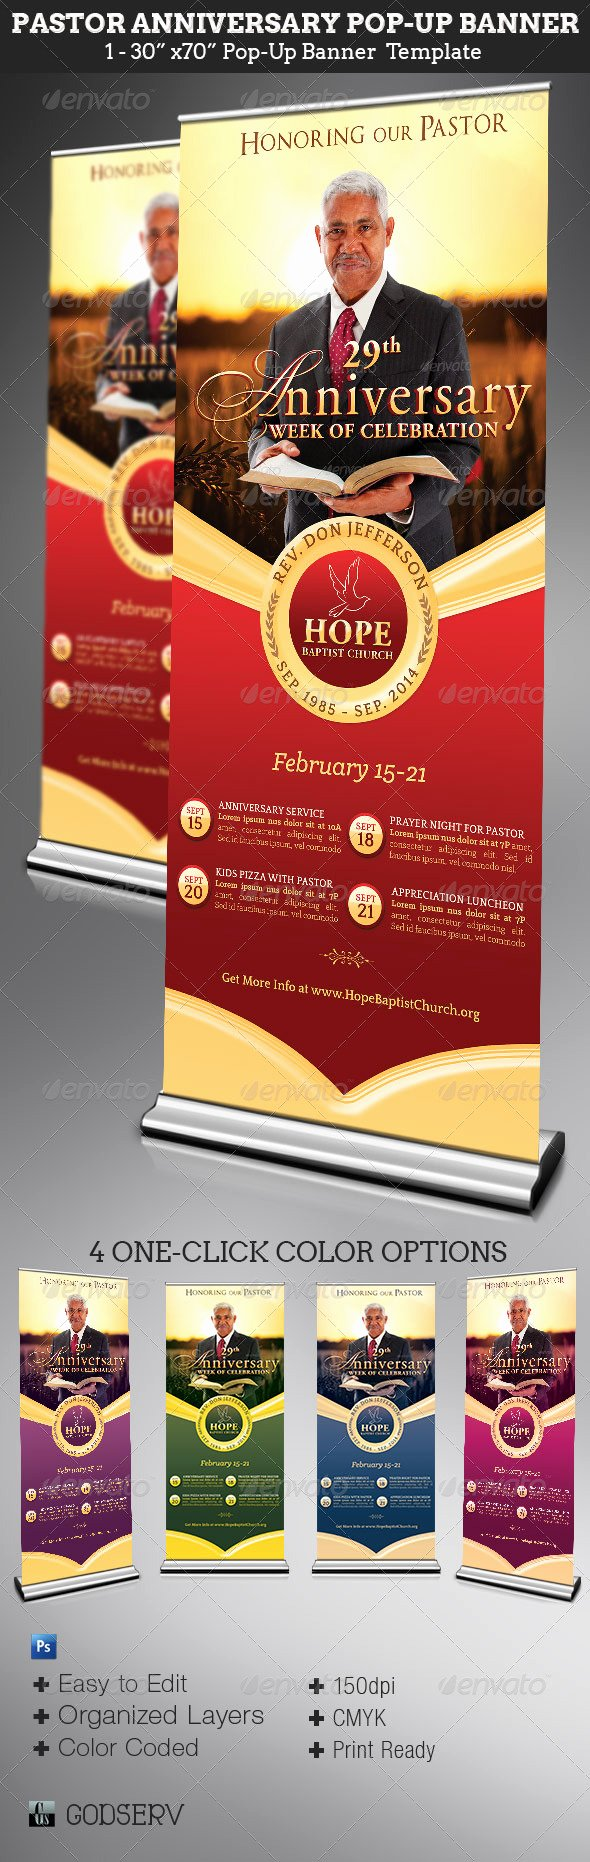 Pop Up Banner Template Awesome Wording for formal attire Pastor Anniversary Gala Ticket with No Children Dondrup